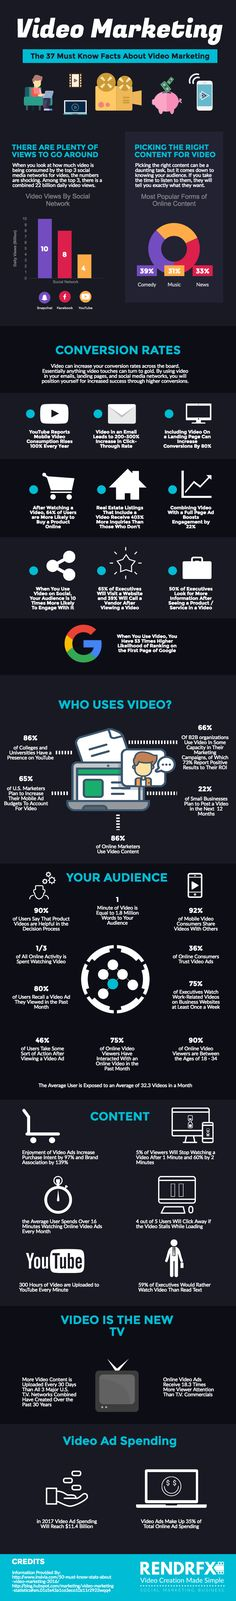 Video Marketing: 37 Must Know Facts About Video Marketing #Infographic #VideoMarketing